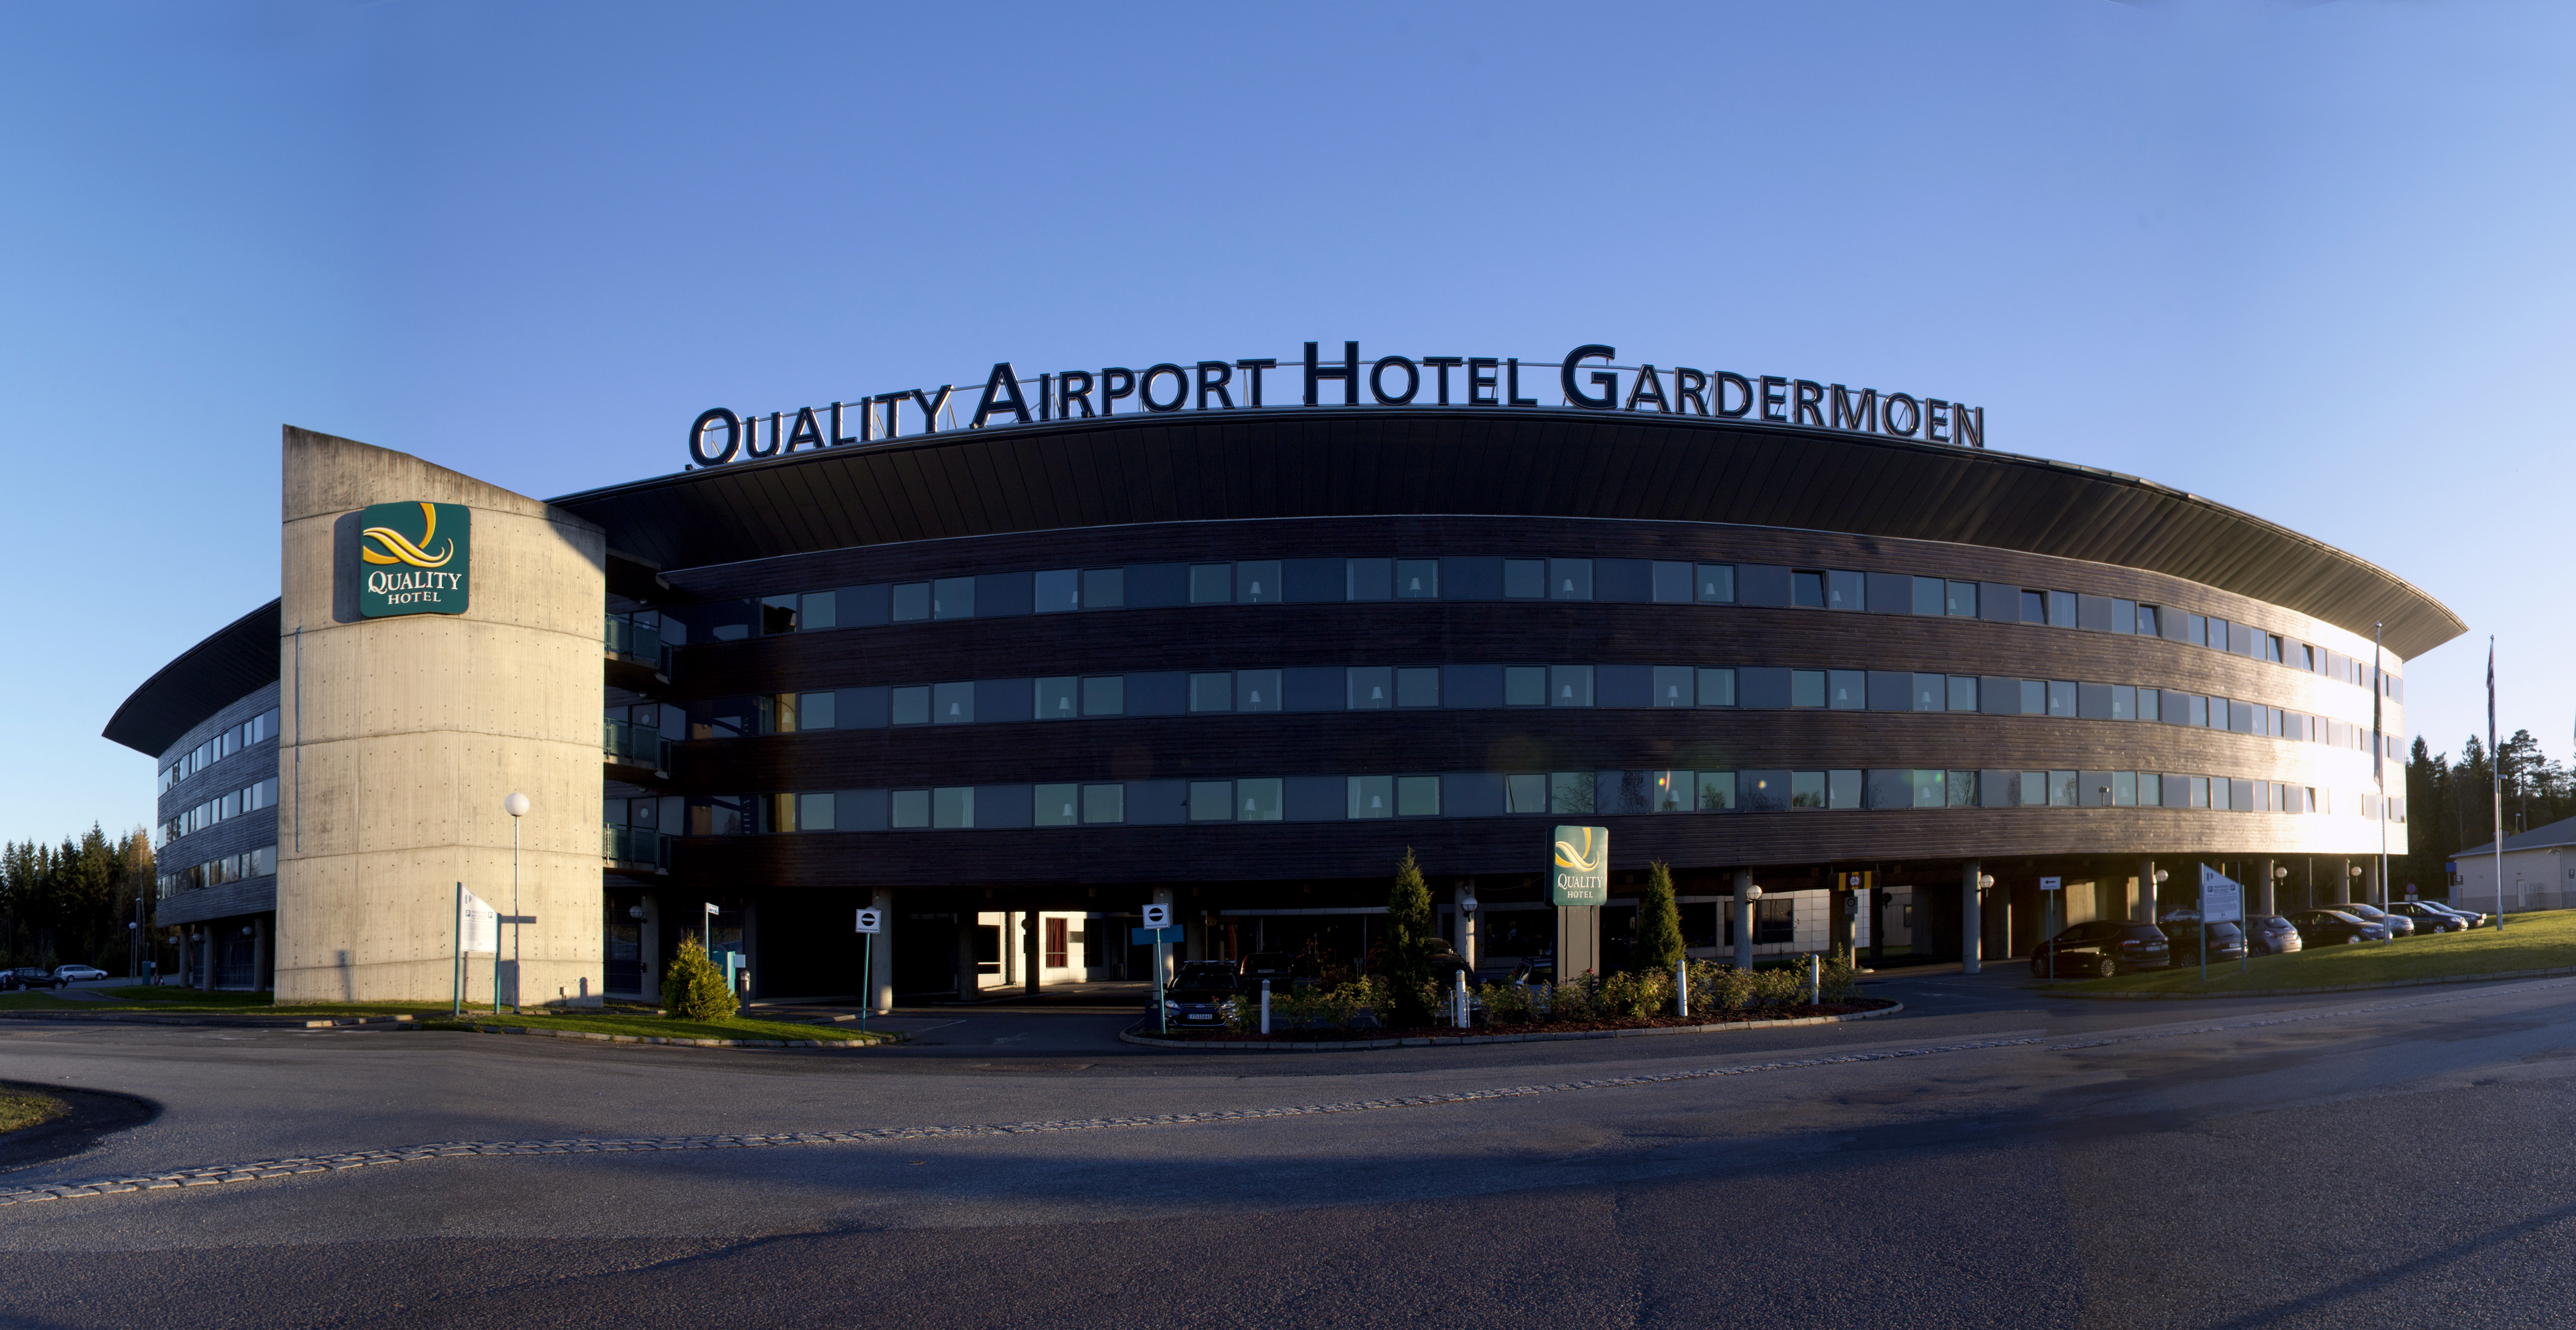 QUALITY AIRPORT HOTEL GARDERMOEN (Norge) Hotell